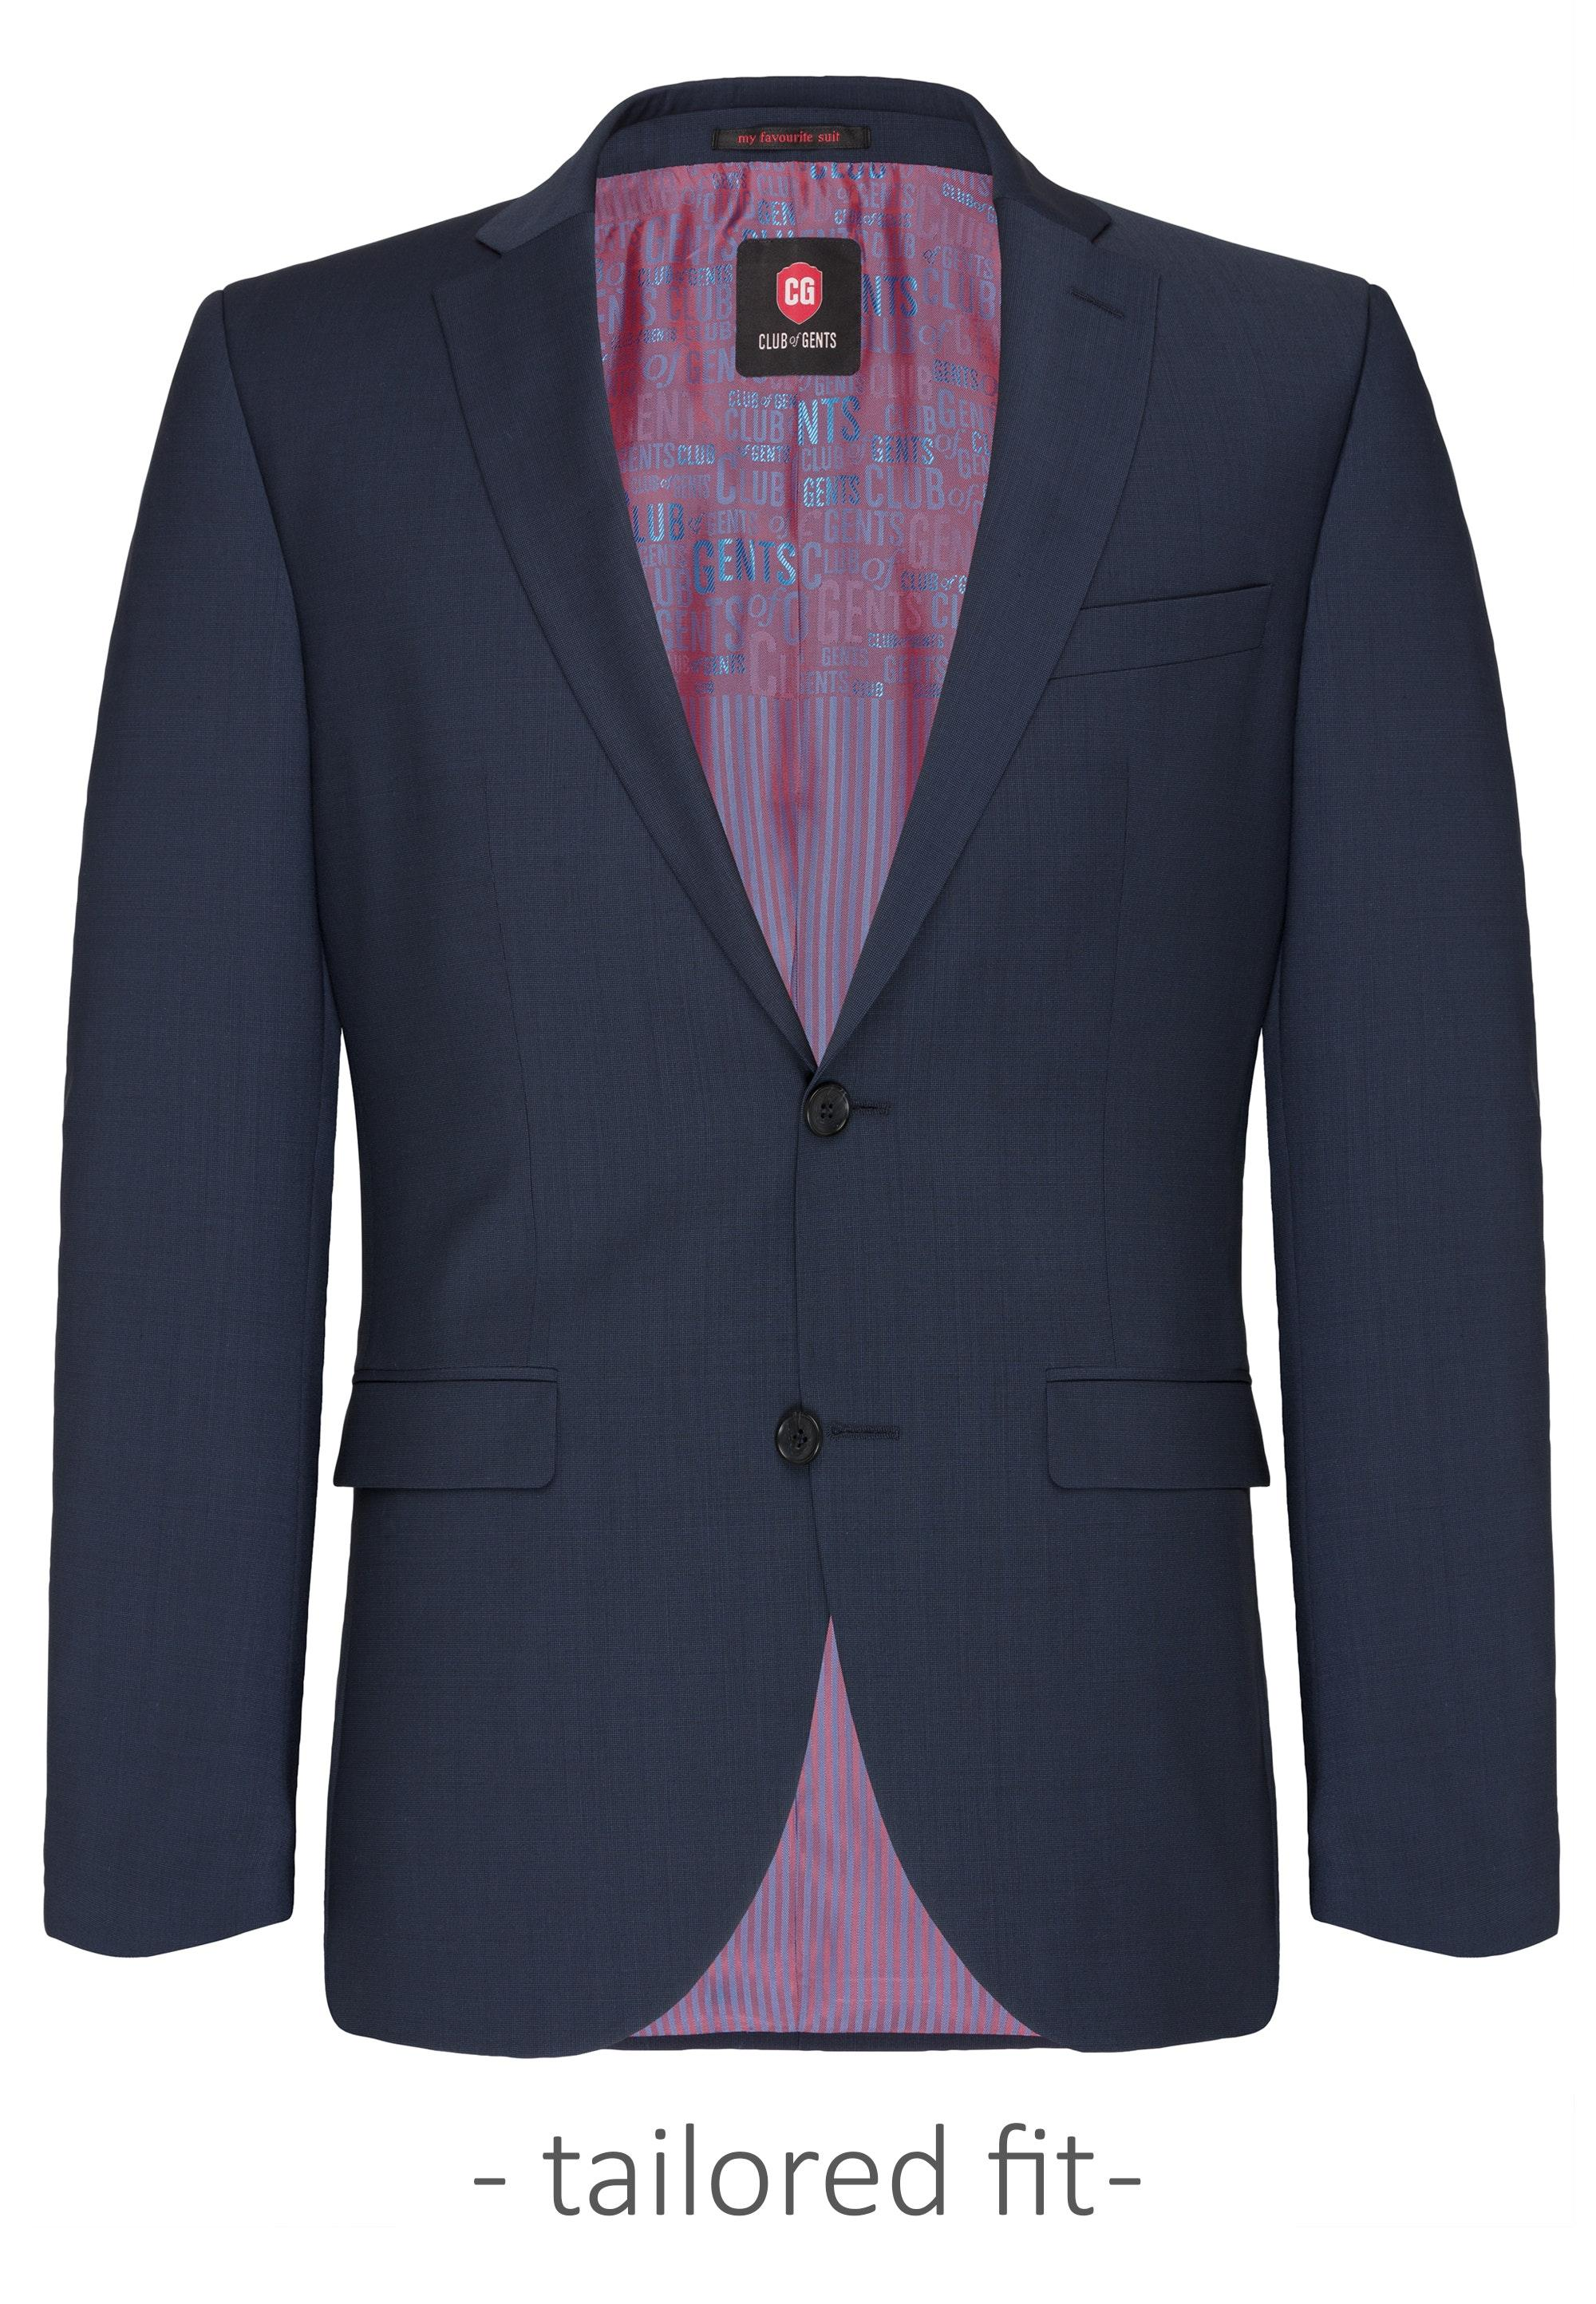 Club of Gents Jacket Andy tailored